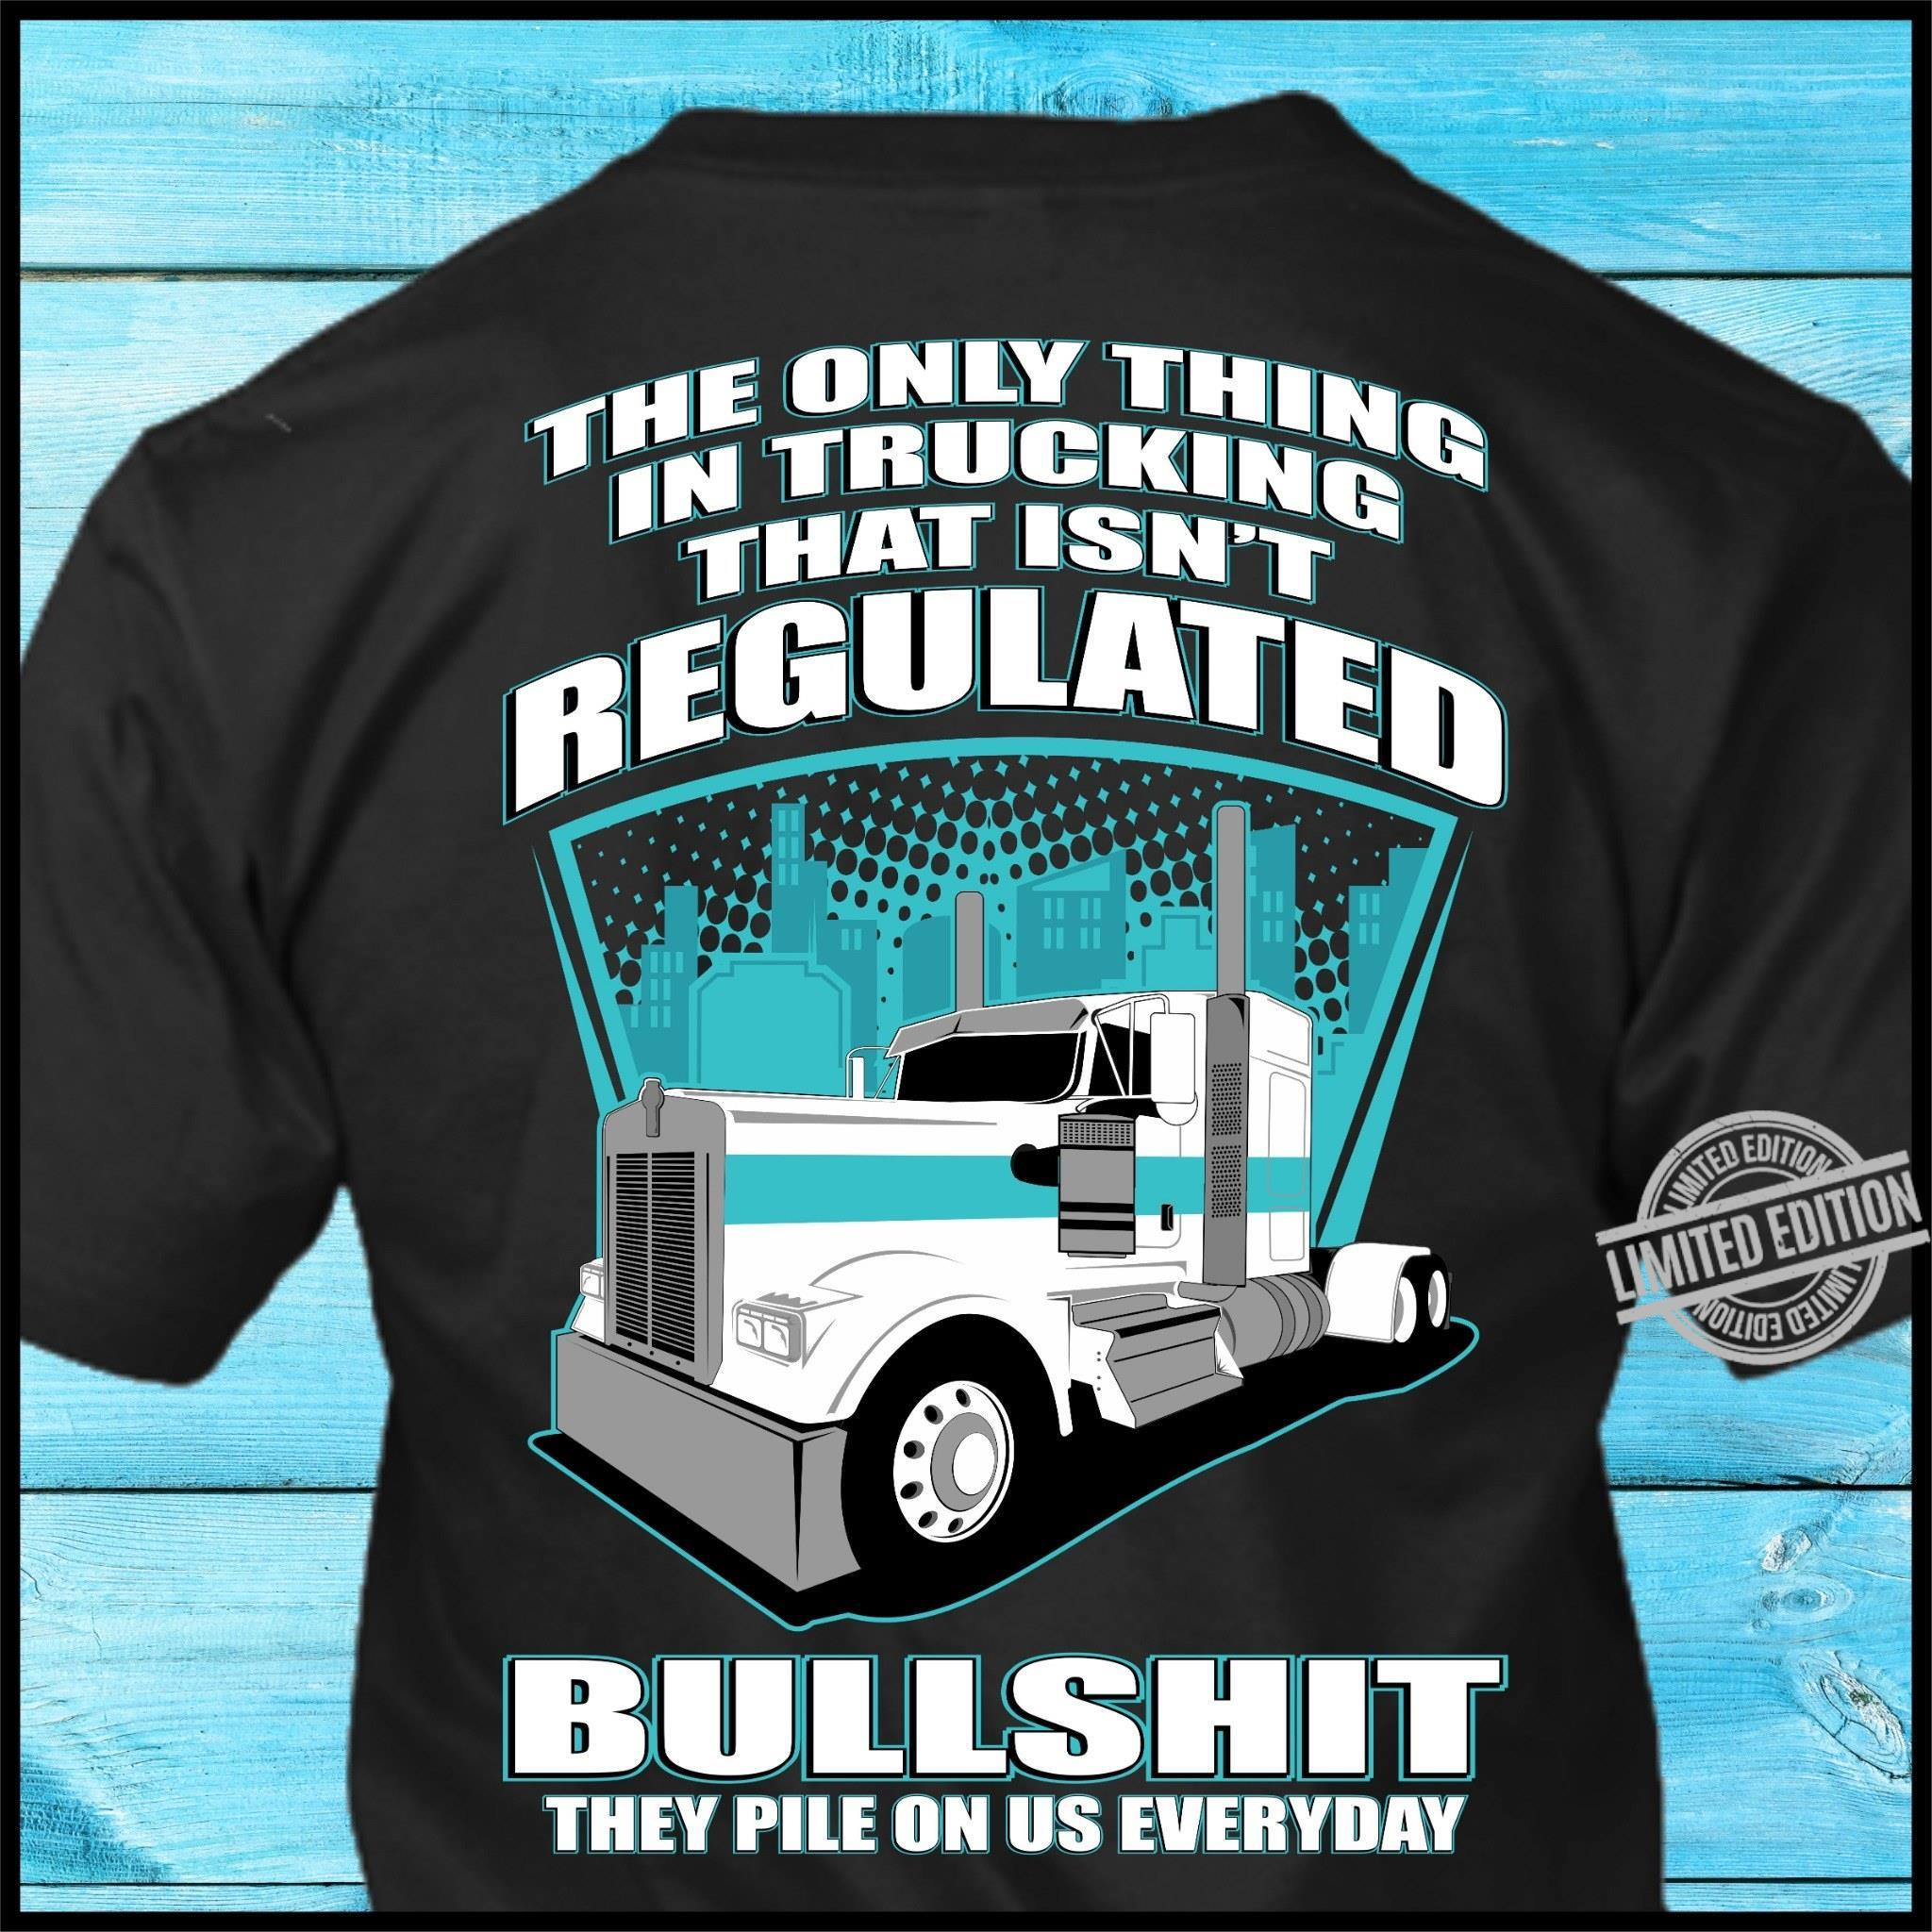 The Only Thing In Trucking That Isn't Regulated Bullshit Shirt